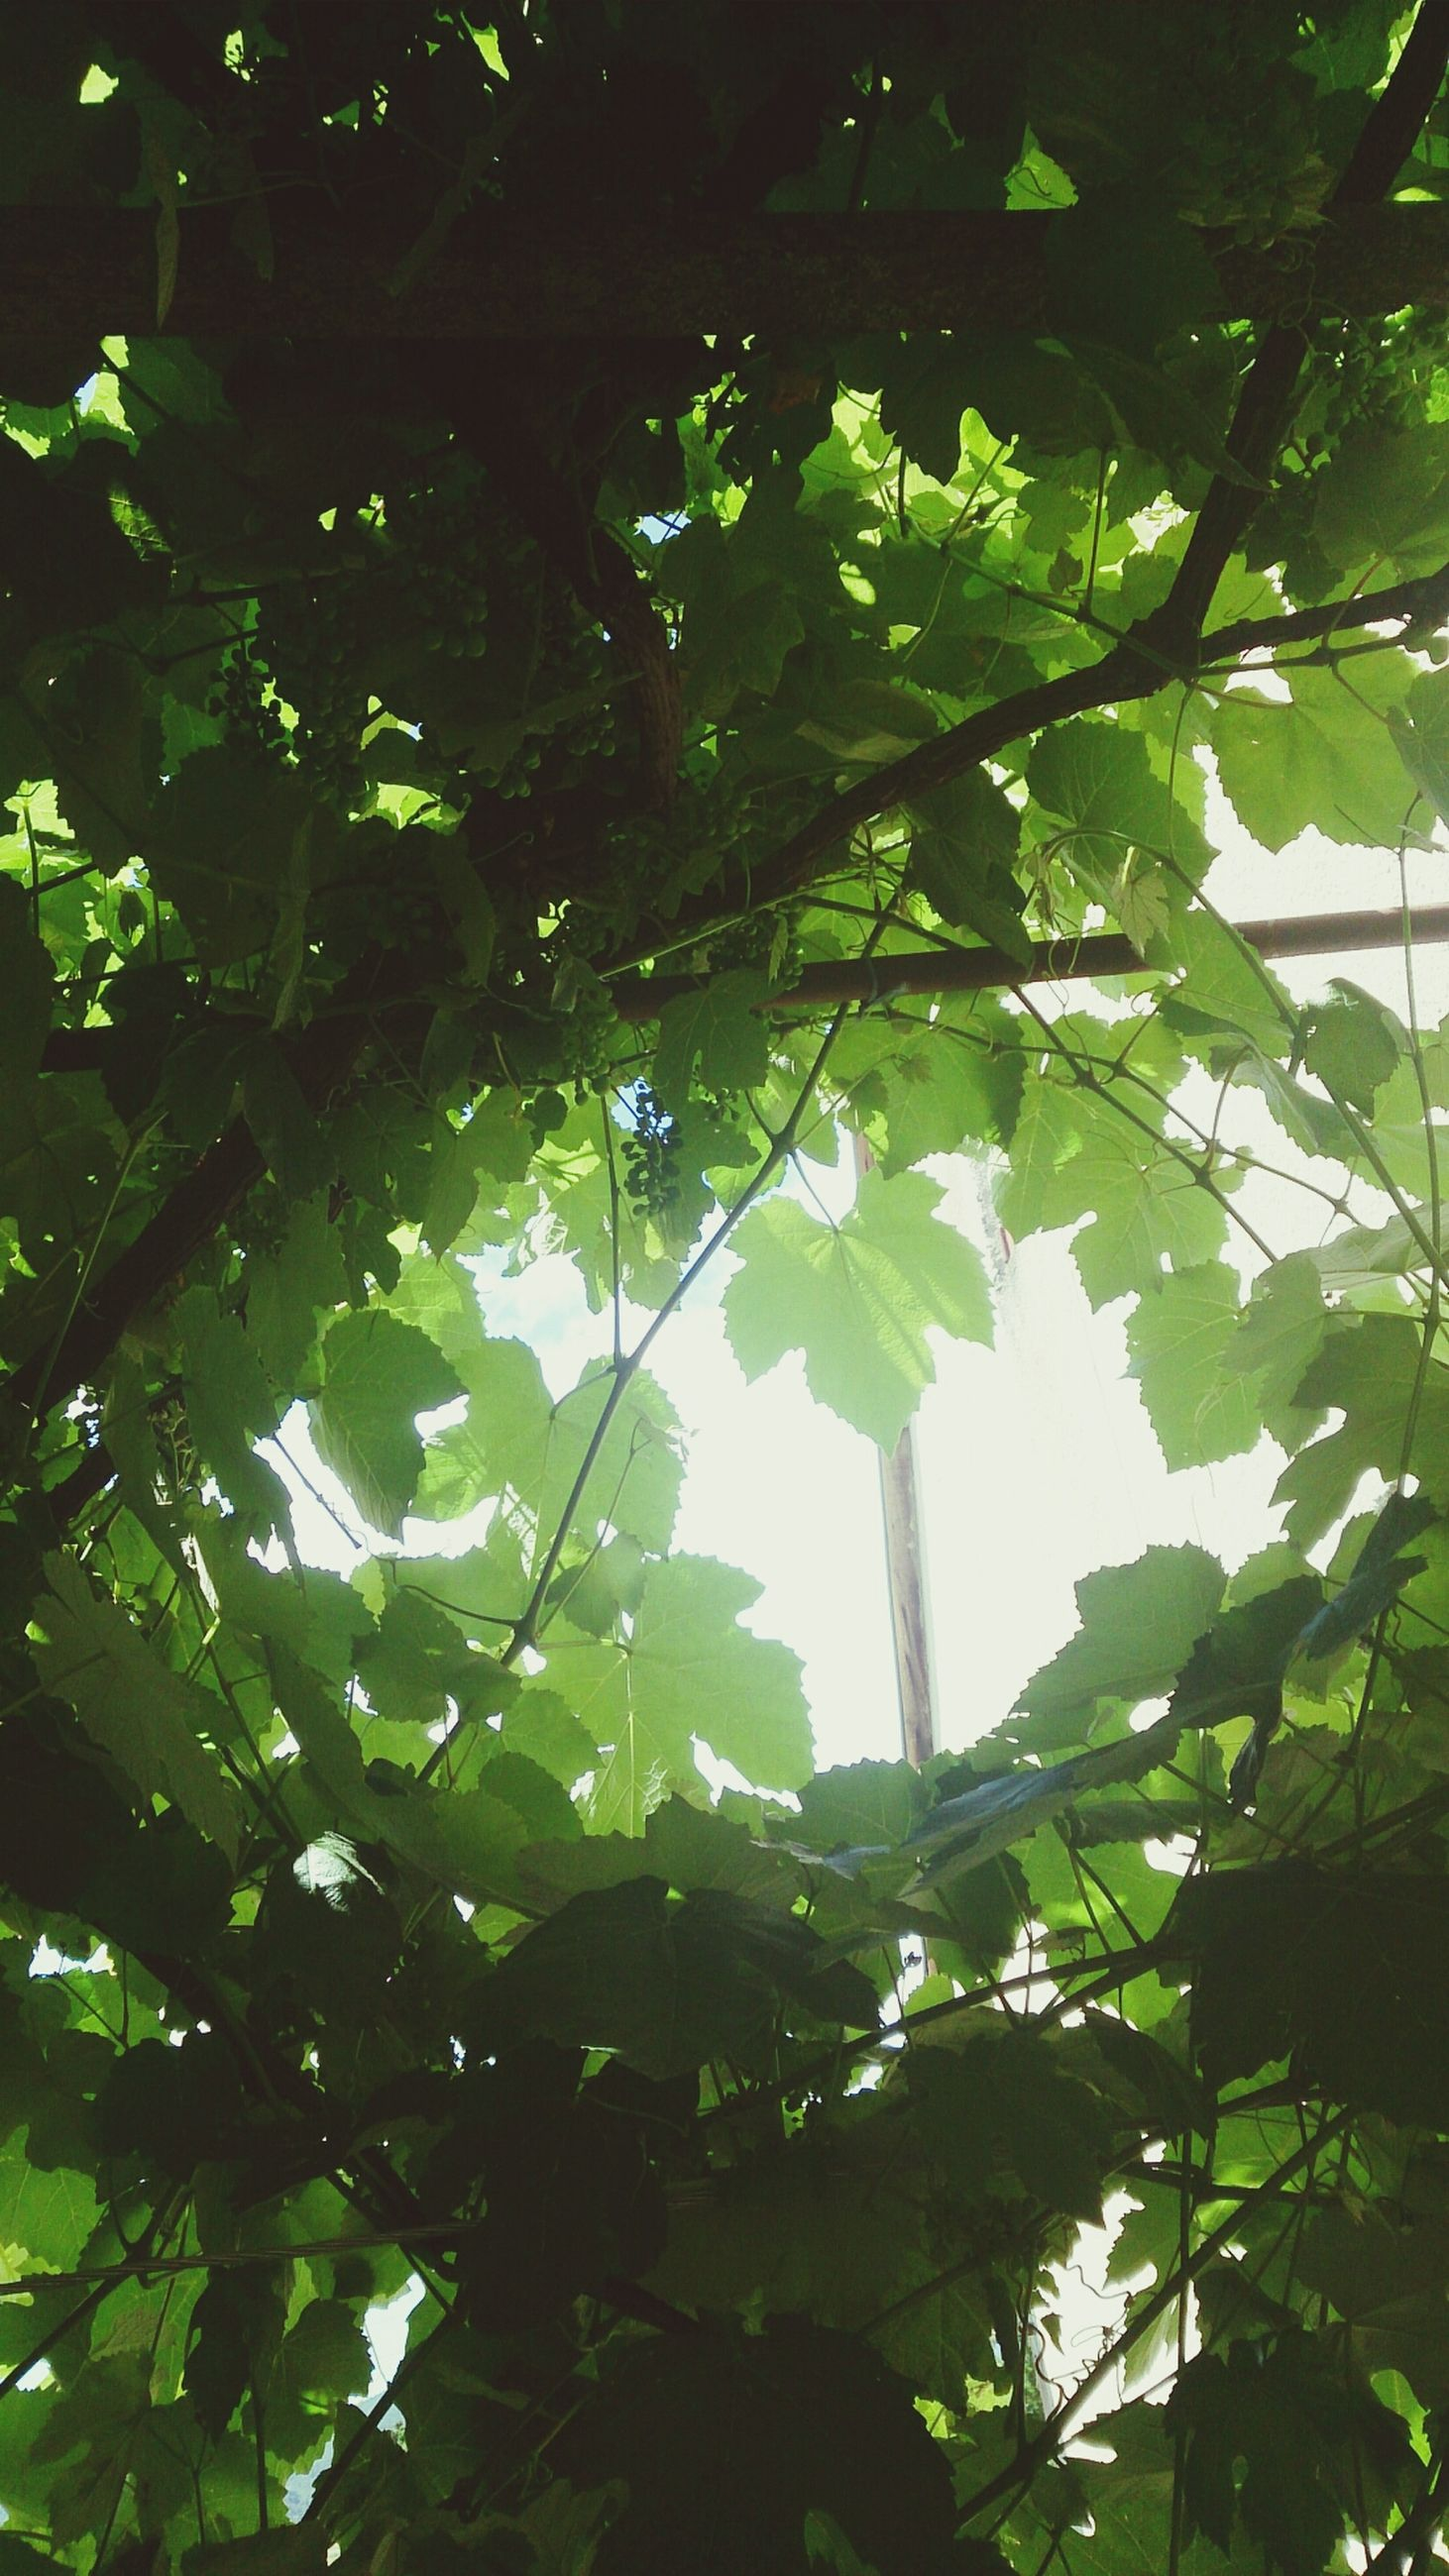 tree, low angle view, leaf, branch, growth, green color, nature, beauty in nature, tranquility, day, sunlight, sky, outdoors, tree trunk, no people, lush foliage, green, directly below, backgrounds, clear sky